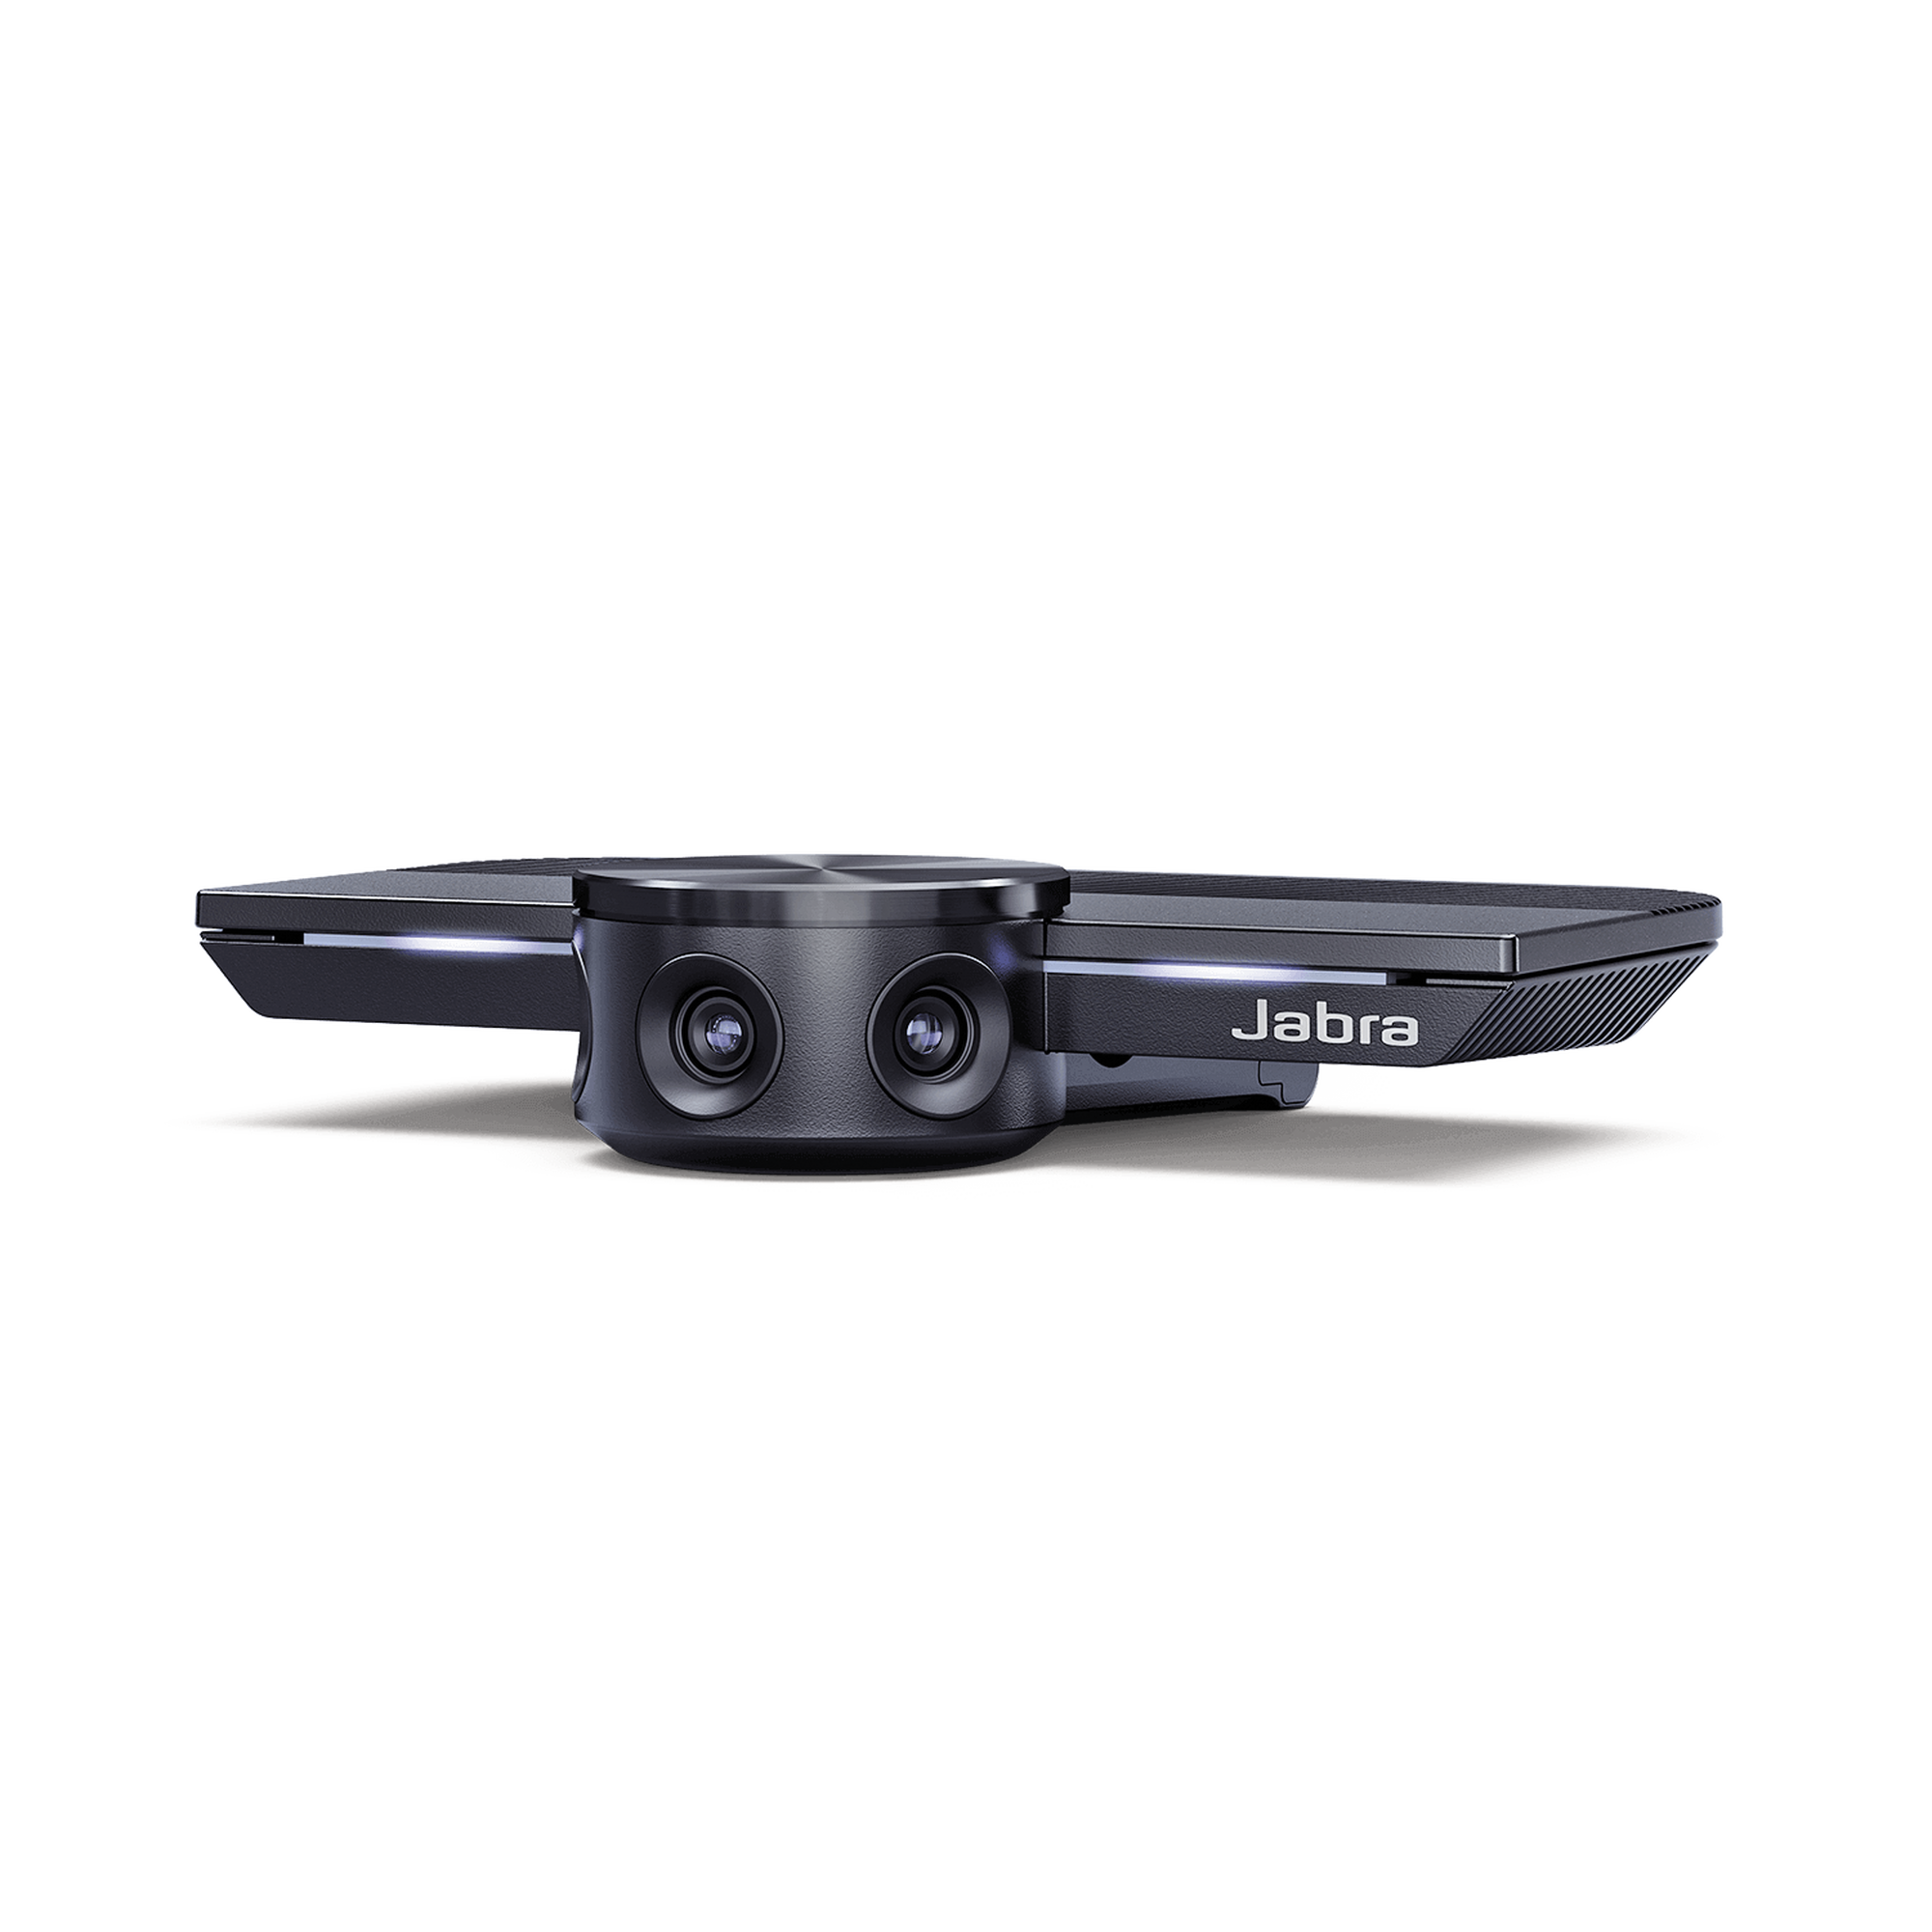 Jabra PanaCast, camara 4K con video panoramico auto ajustable, ideal para salas de reunion peque�as (8100-119)